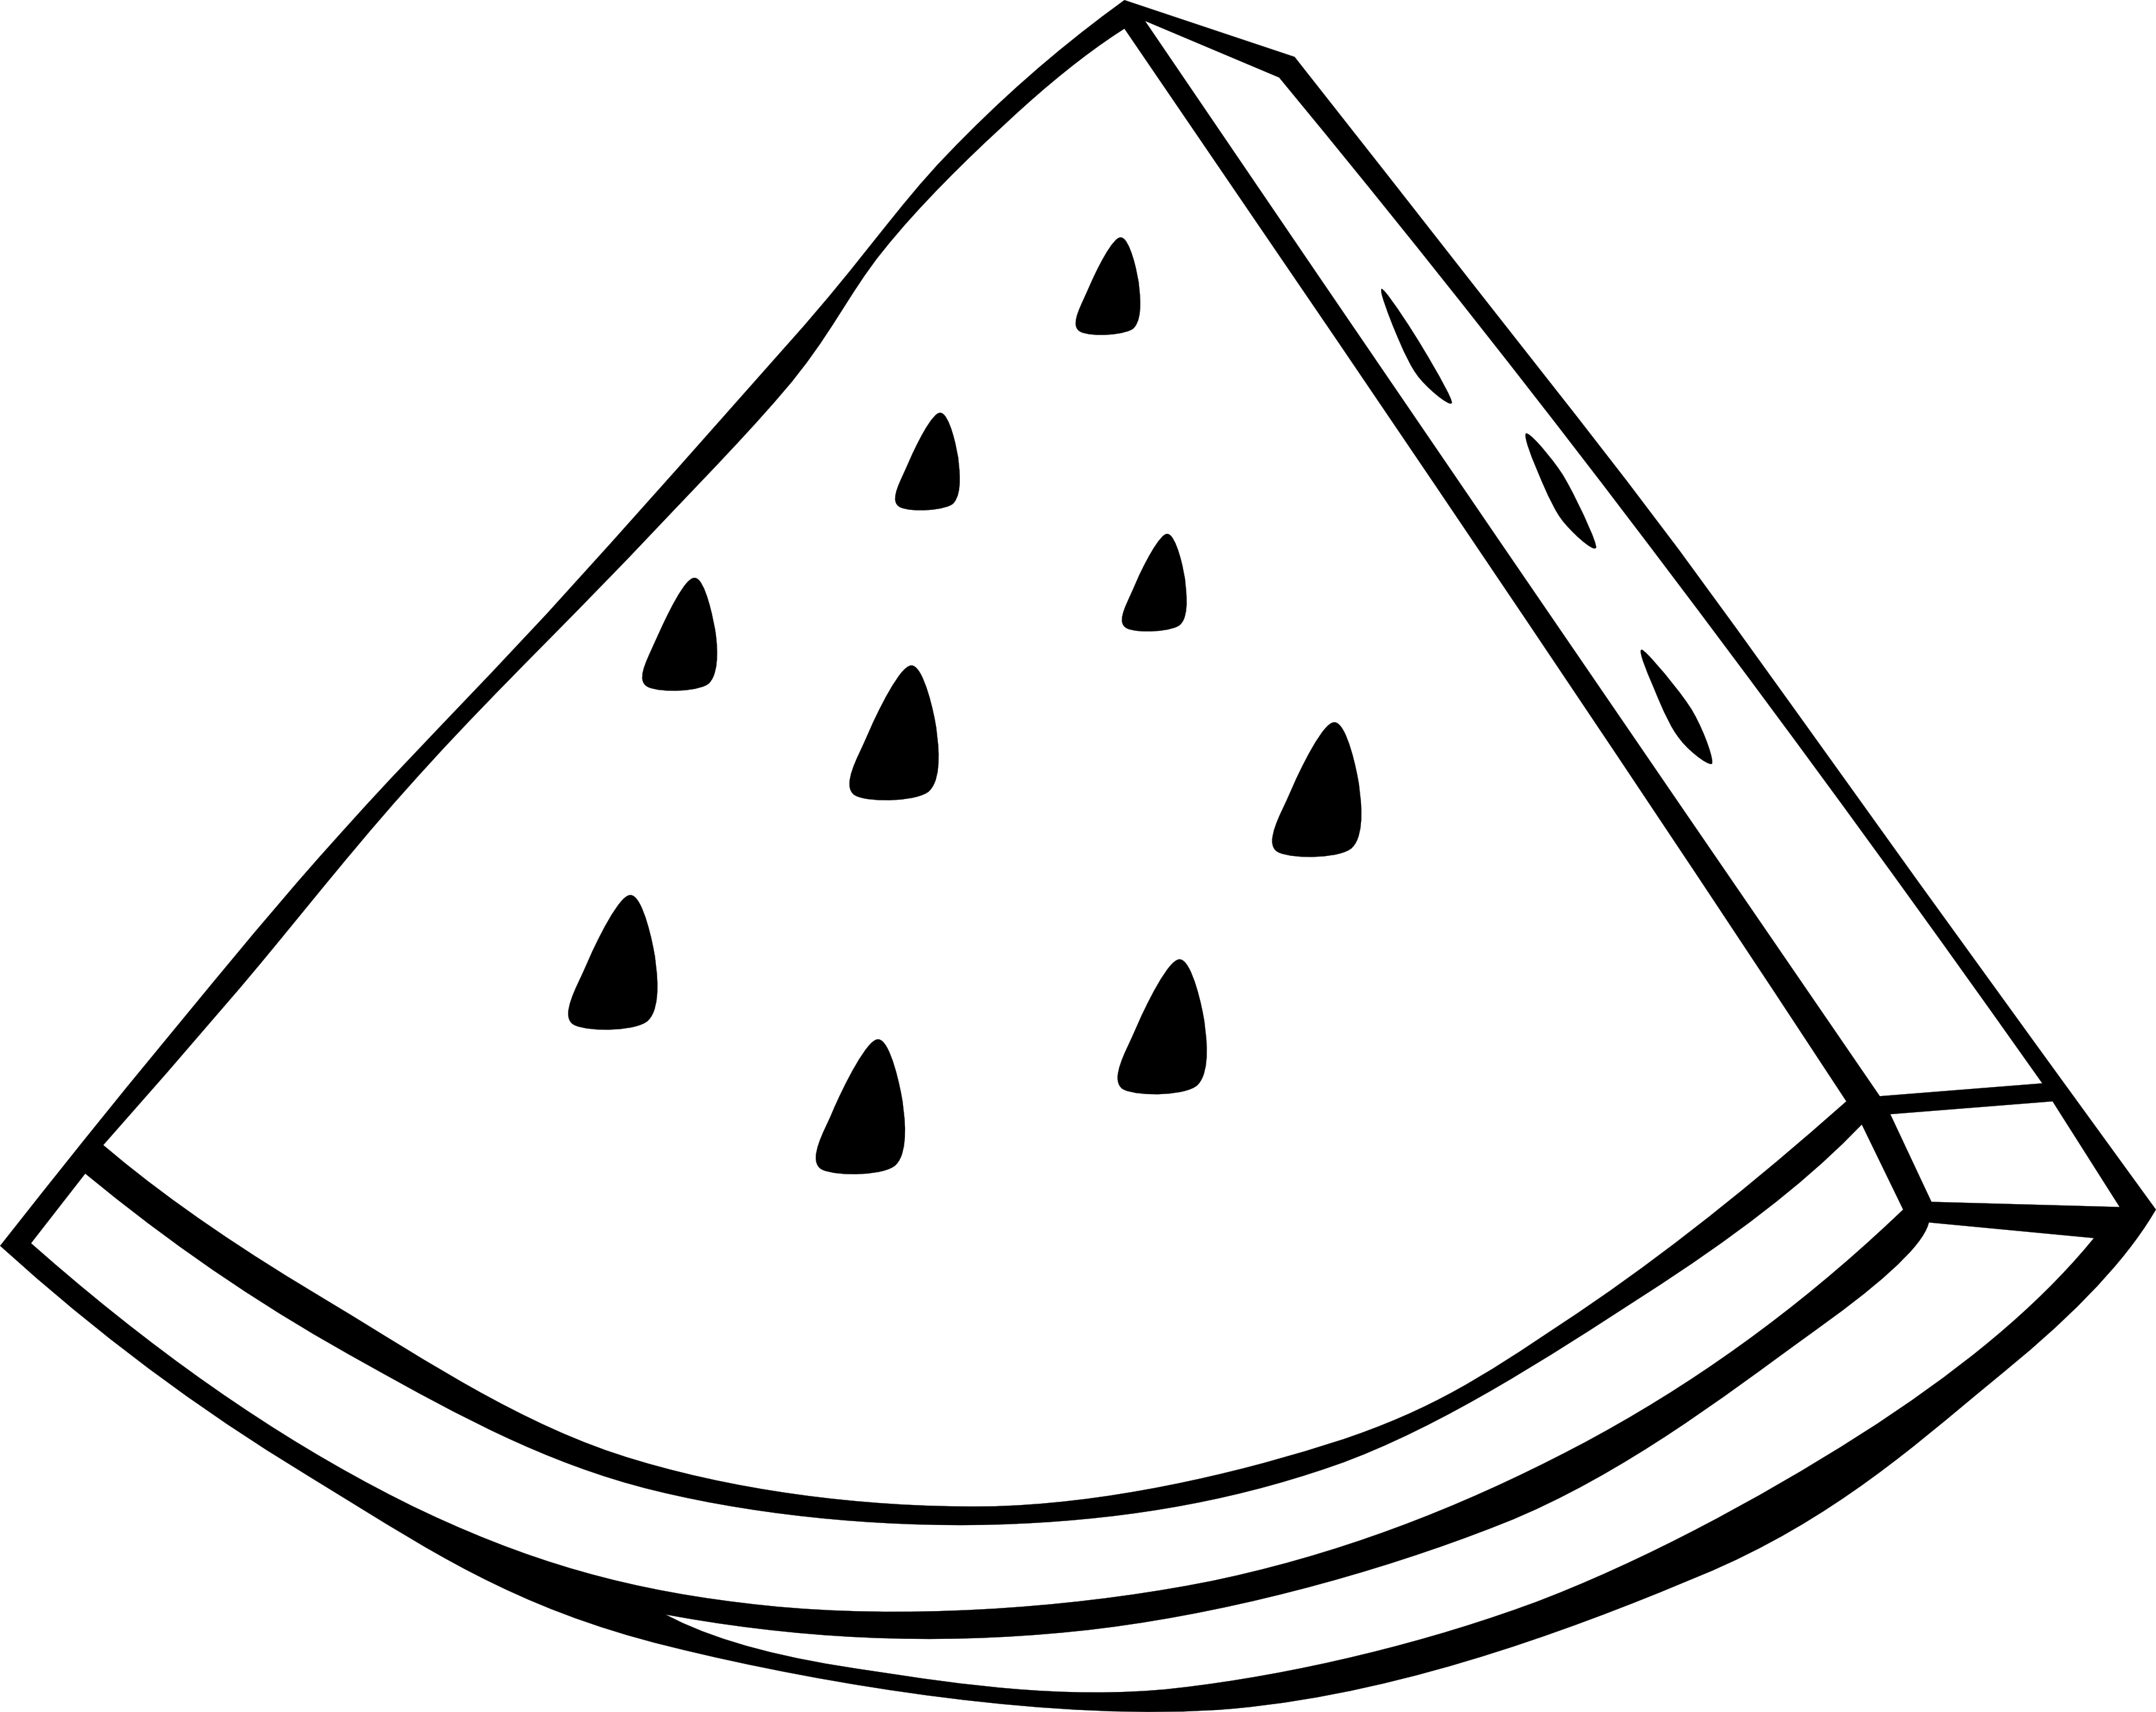 Vector vegetables simple. Black and white